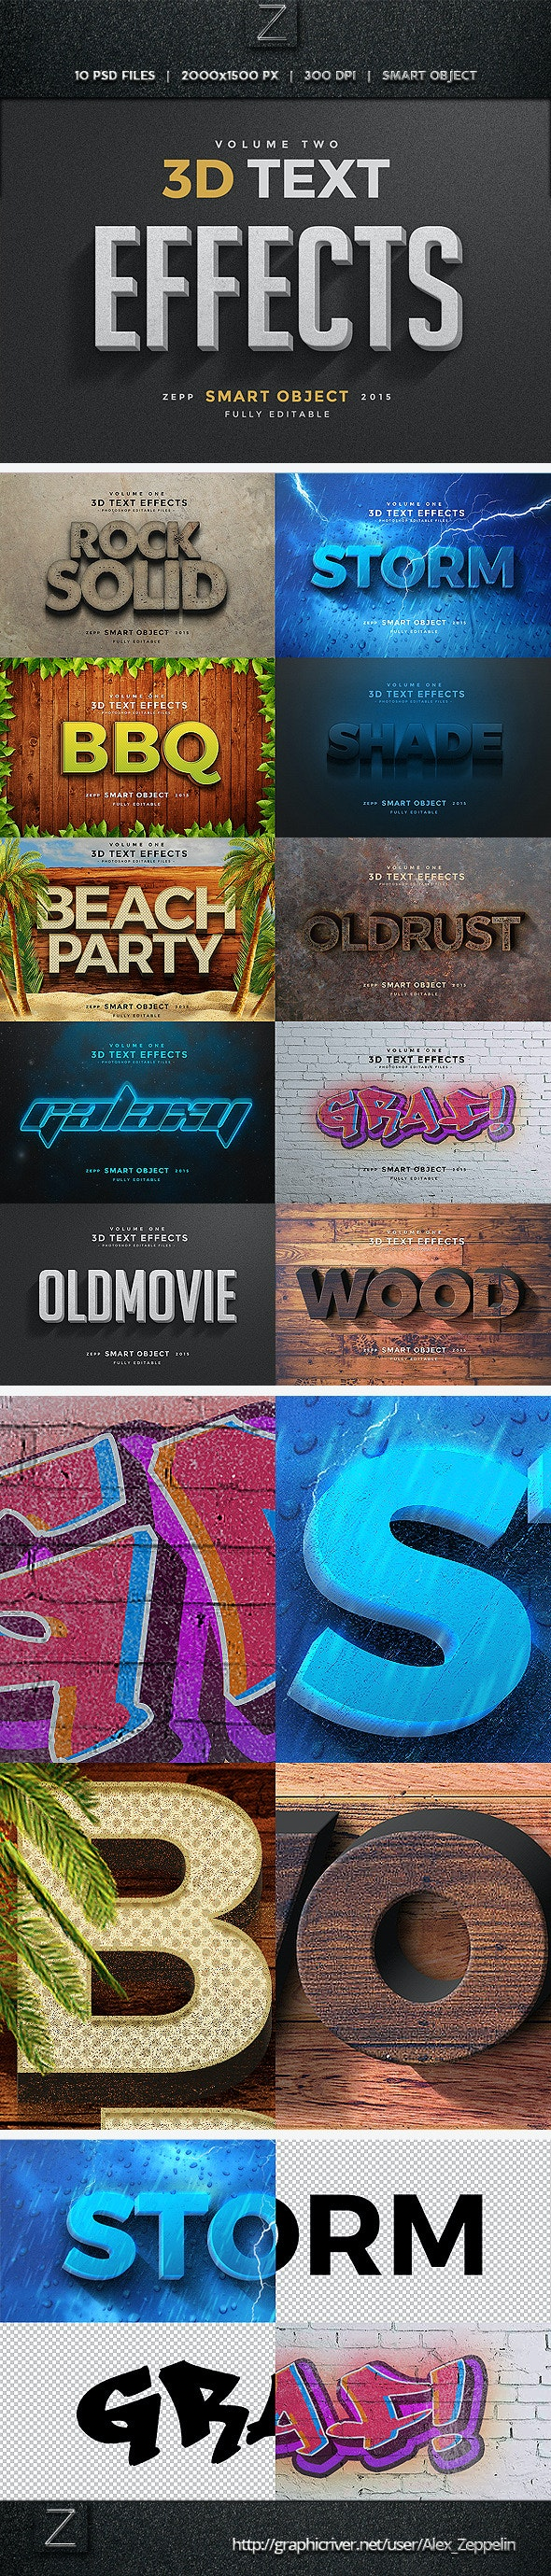 3D Text Effects Vol.2 - Text Effects Actions